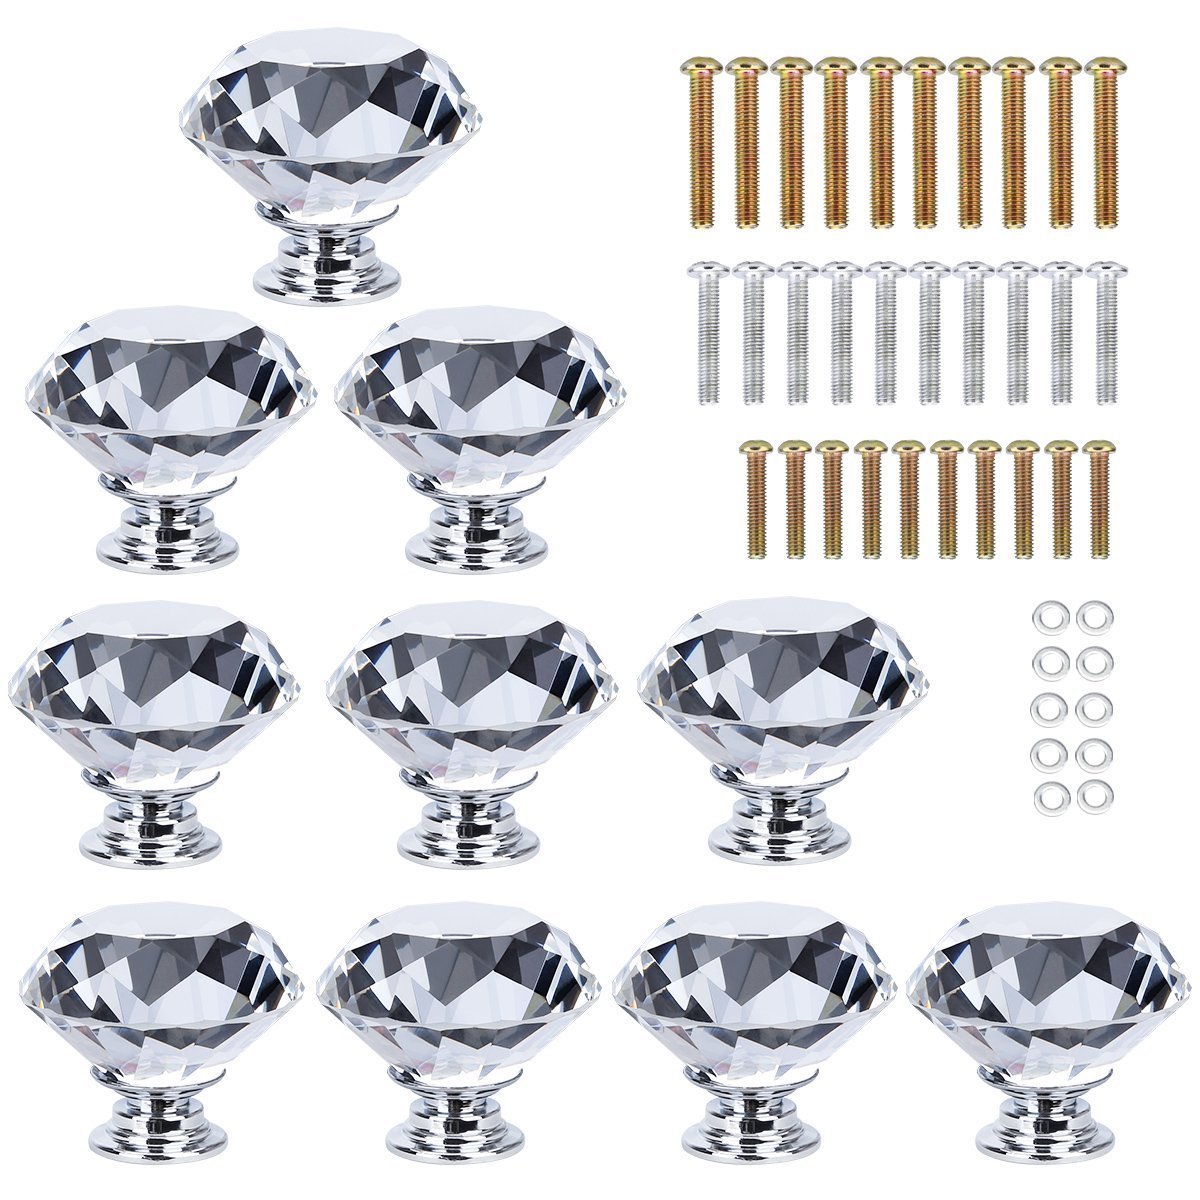 MELODIE DIRECT 10PCS 40MM Diamond Crystal Glass Cabinet Knobs Cupboard Drawer Pull Handle,3 Size Screws